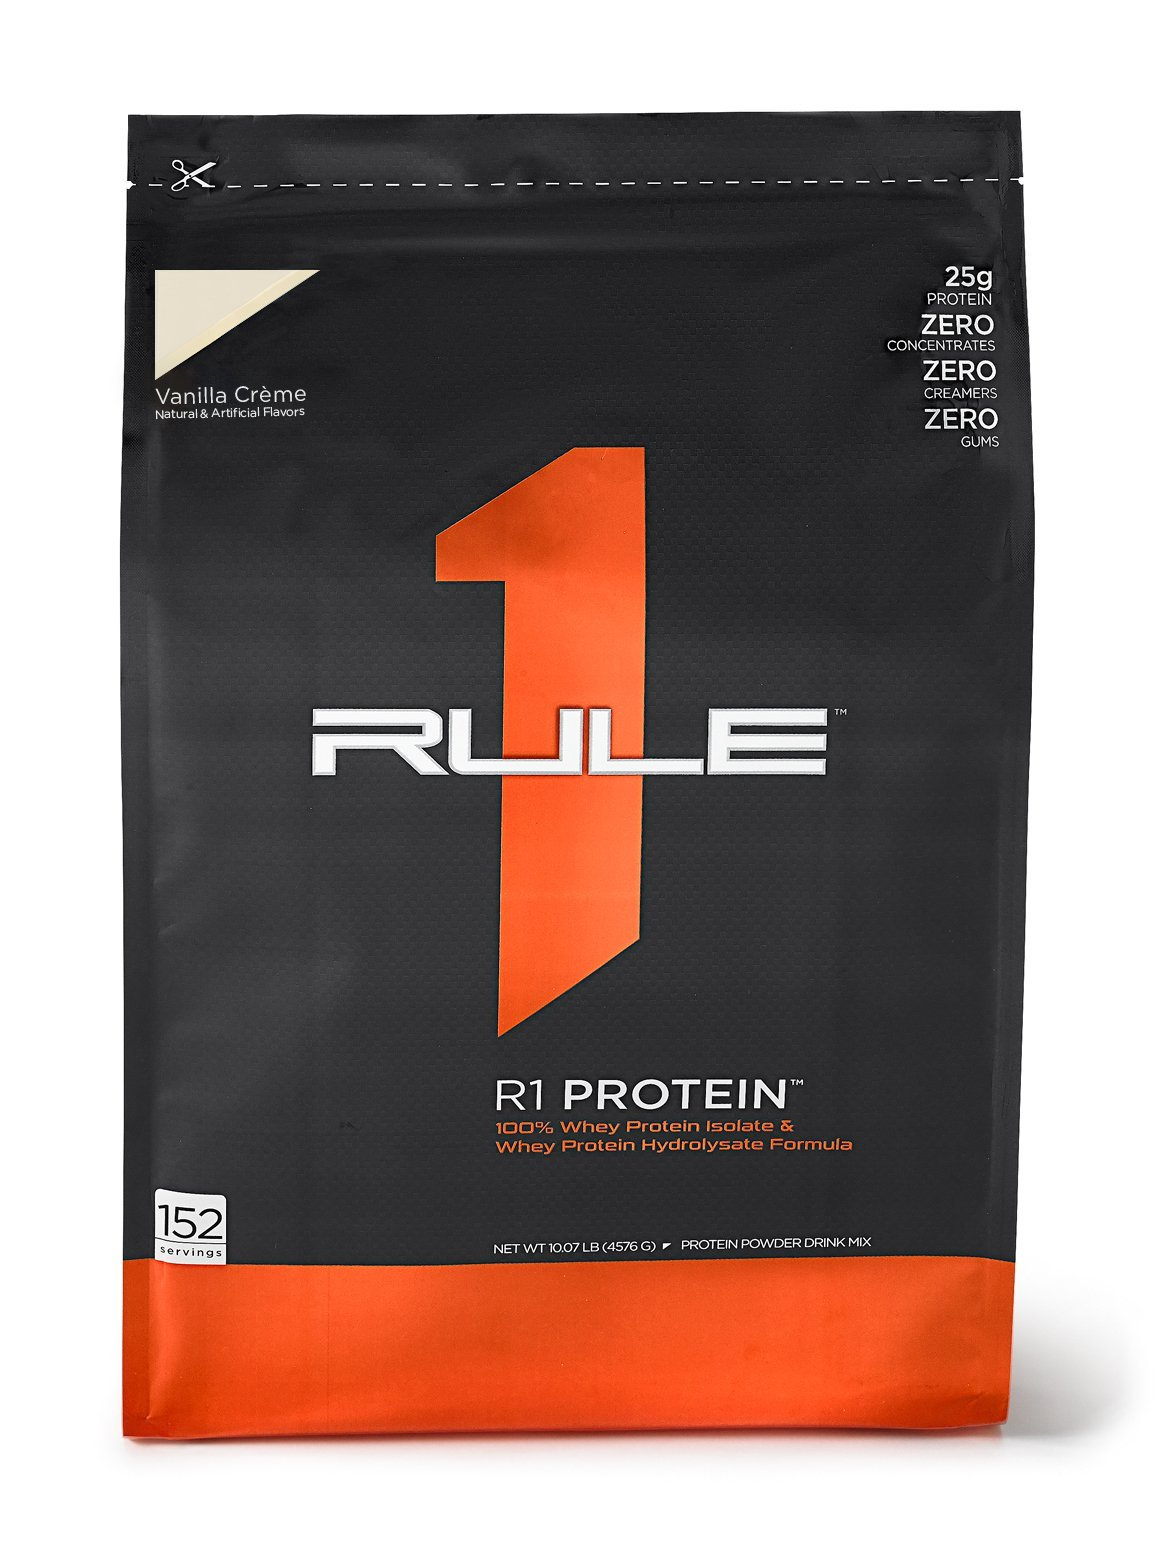 R1 Protein Whey Isolate/Hydrolysate, Rule 1 Proteins (152 Servings, Vanilla Creme)